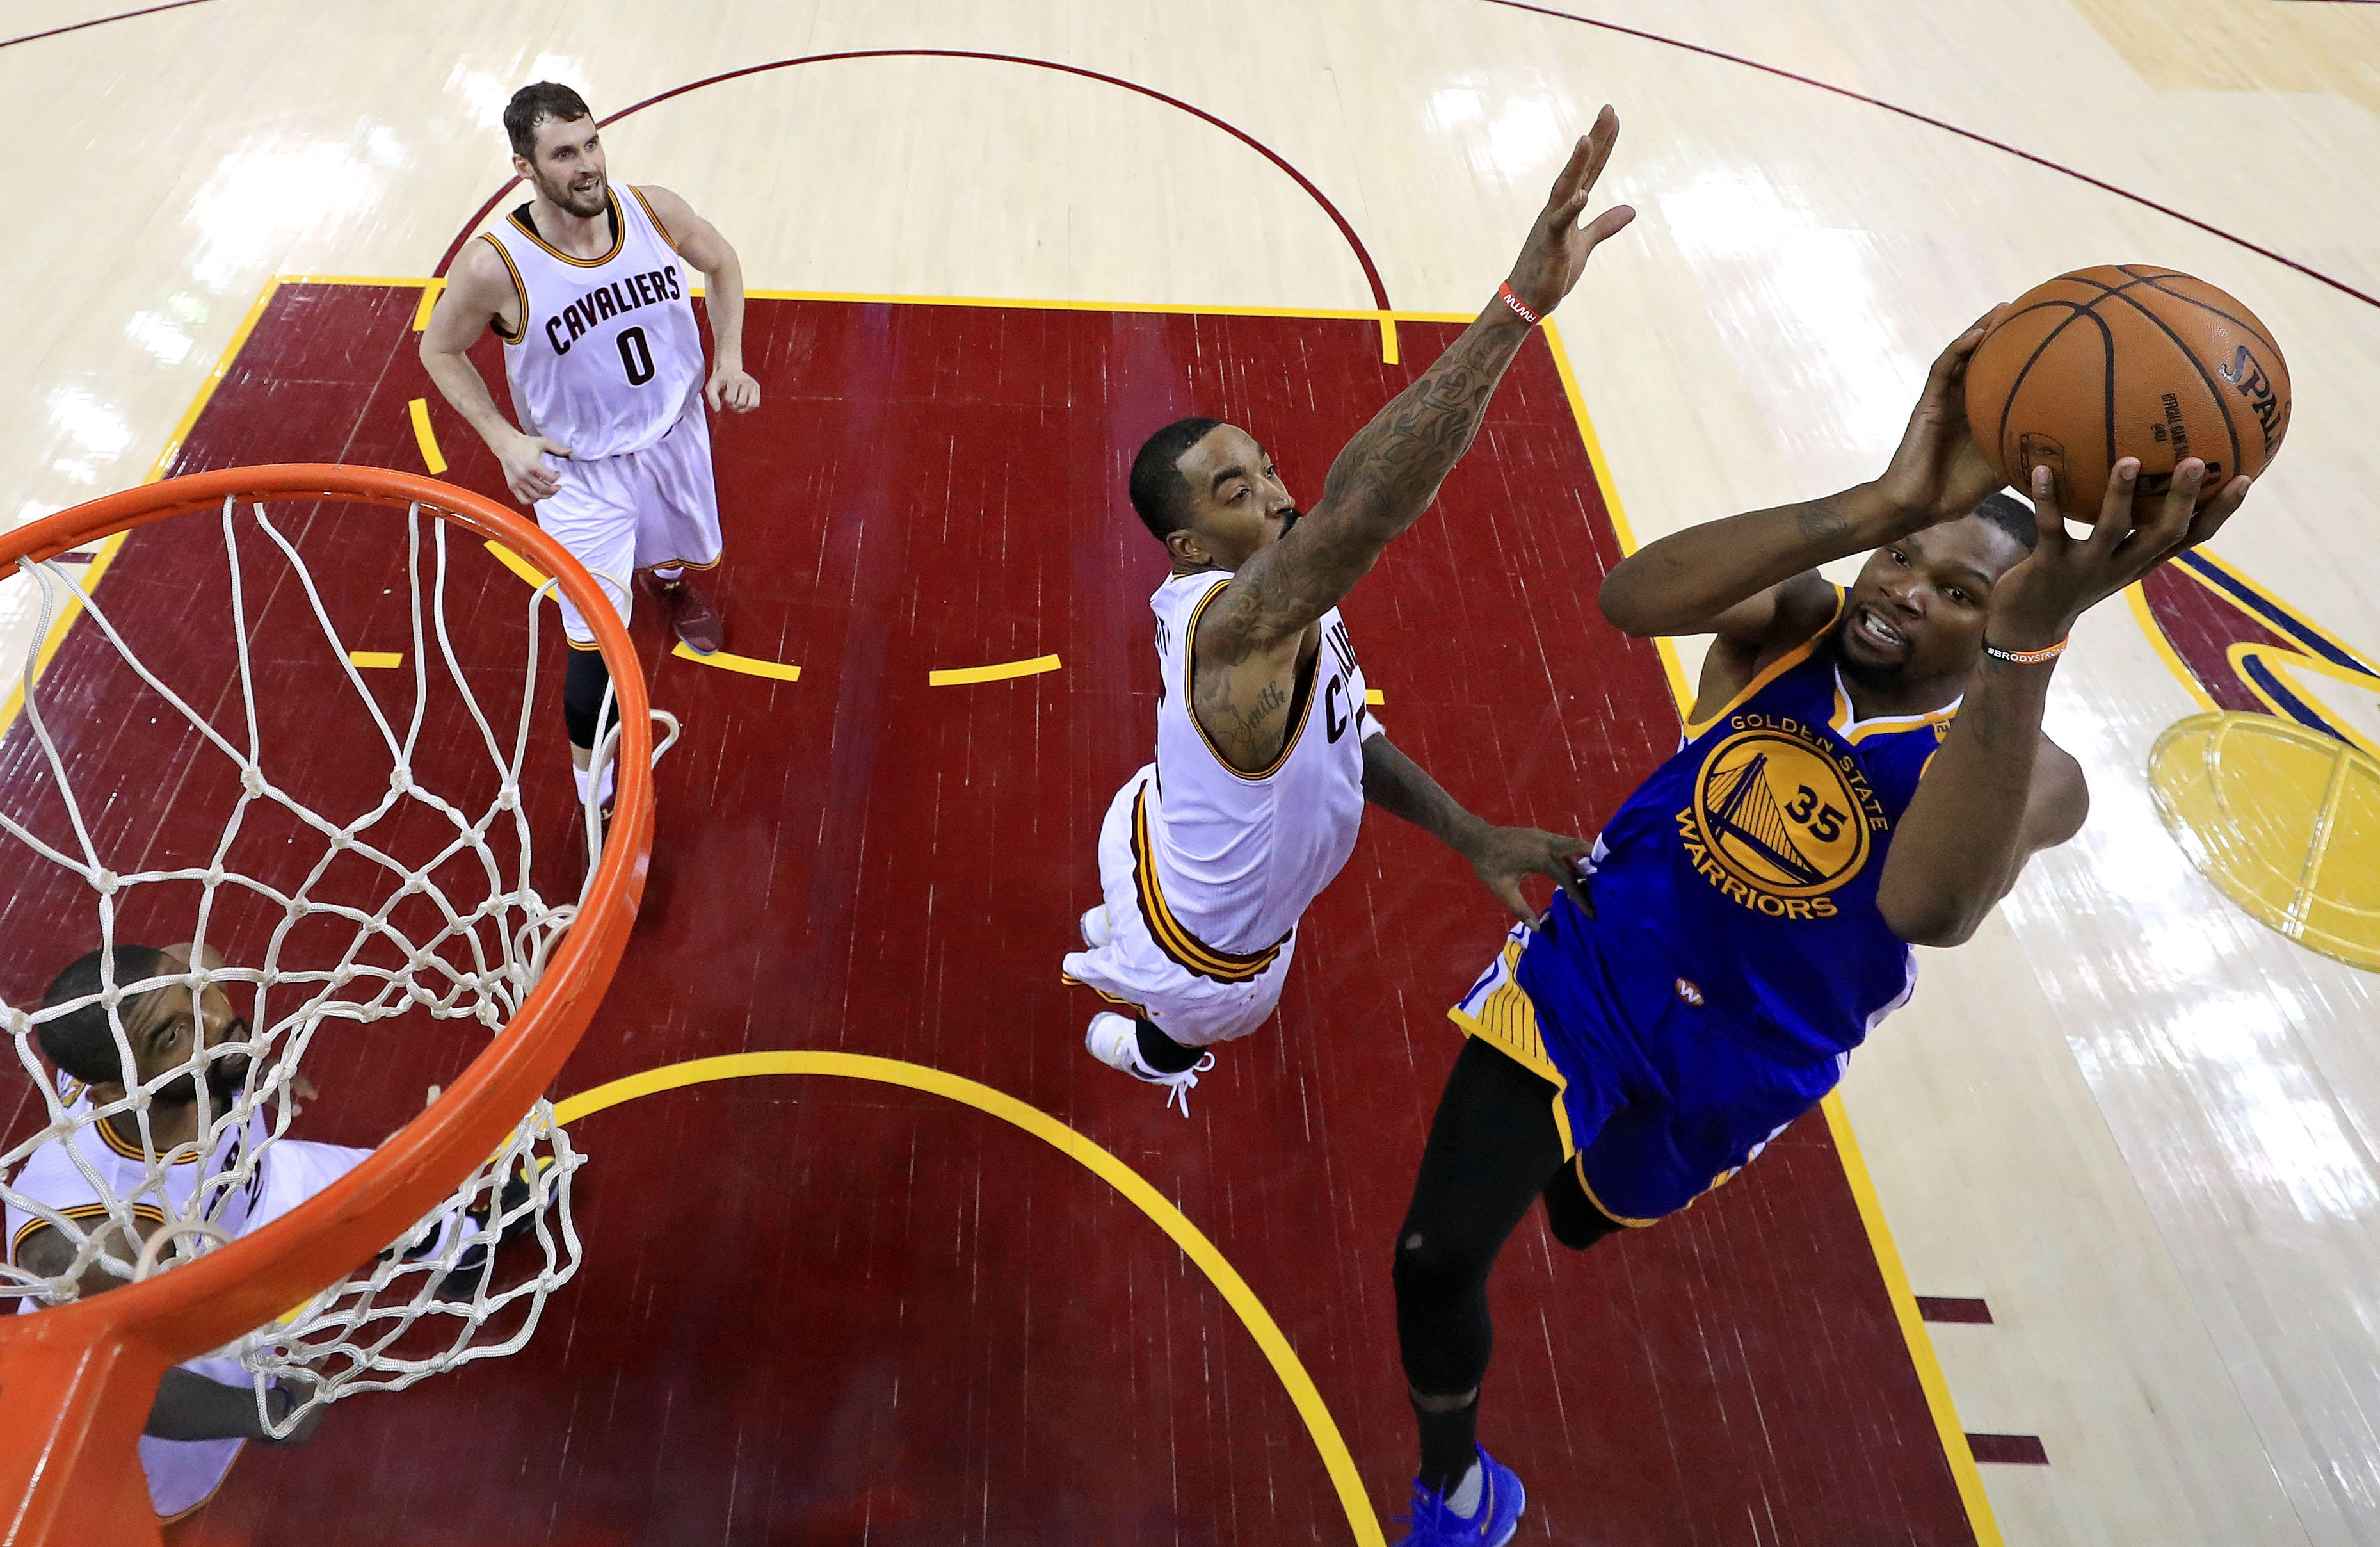 Warriors beat Cavs 118-113 to move within game of series, postseason sweep - CBS News